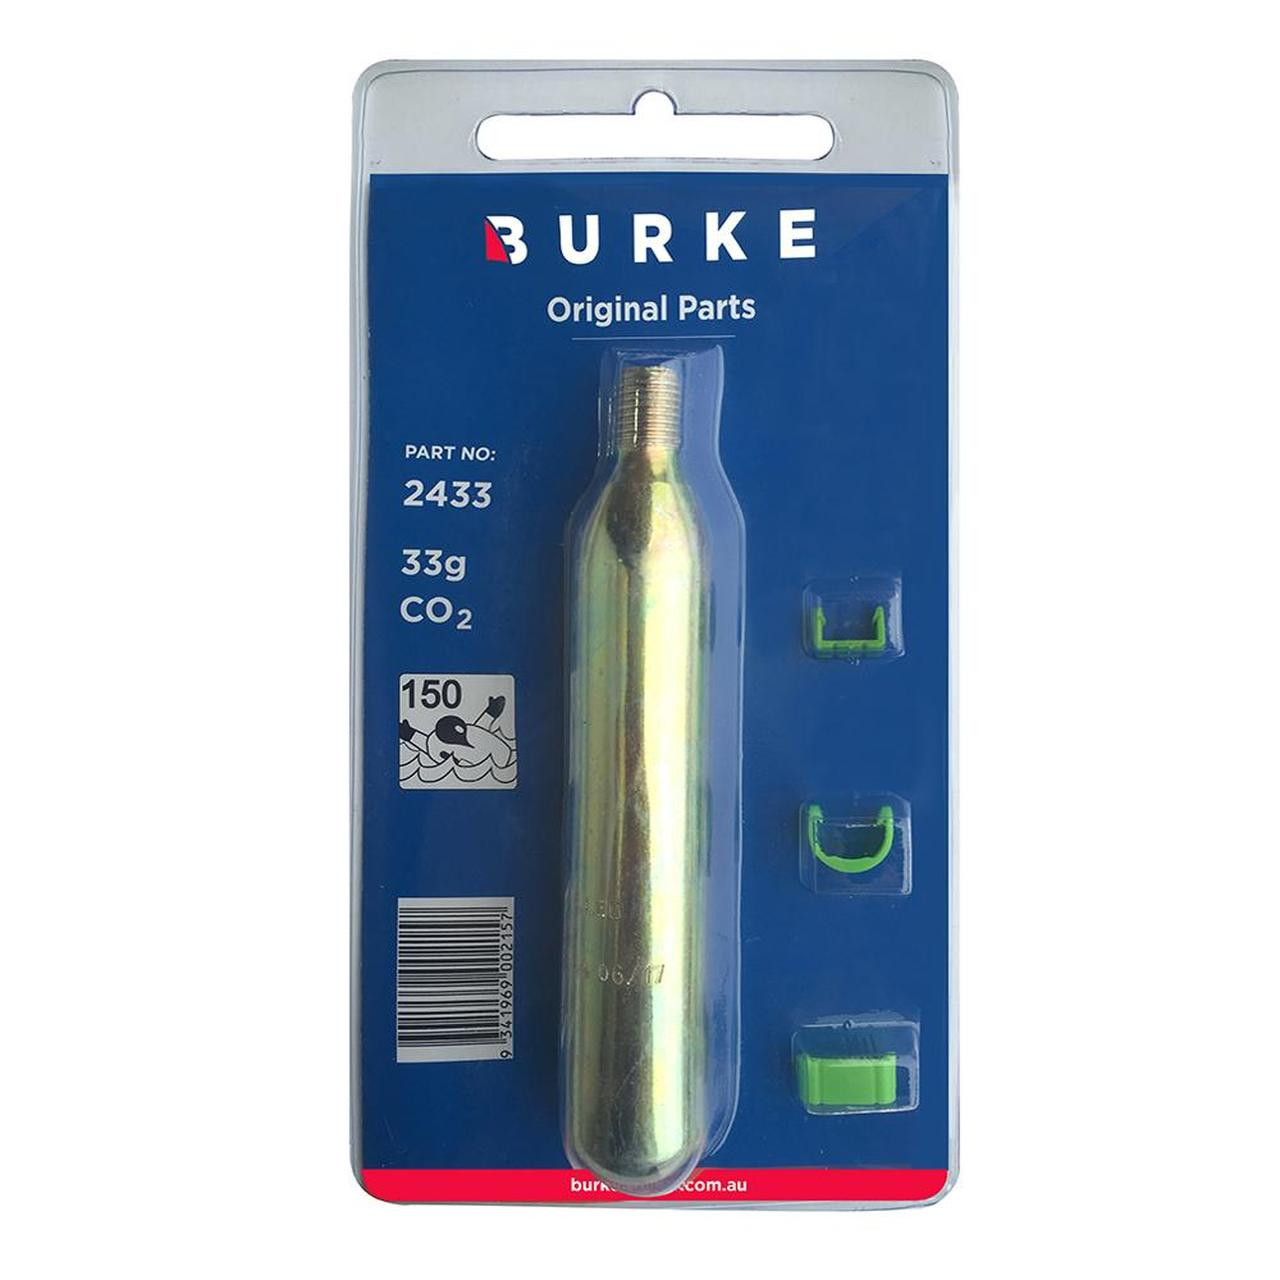 Burke Life Jacket PFD Recharge 33g CO2 Kit with clips